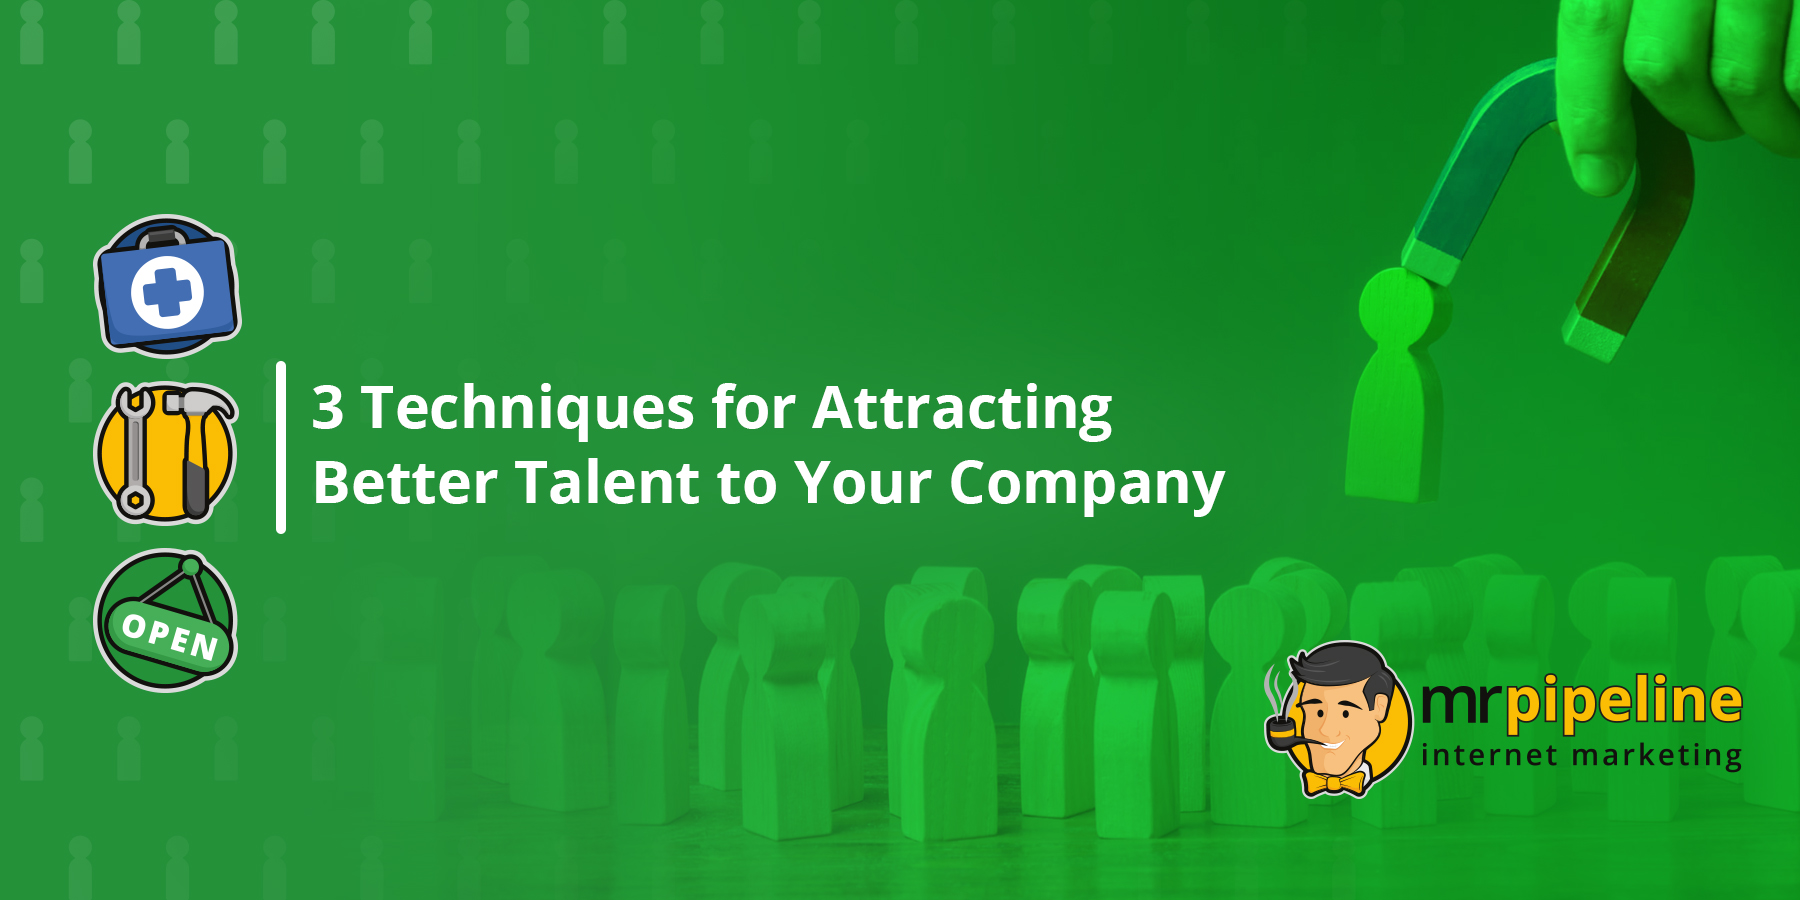 3 Techniques for Attracting Better Talent to Your Company